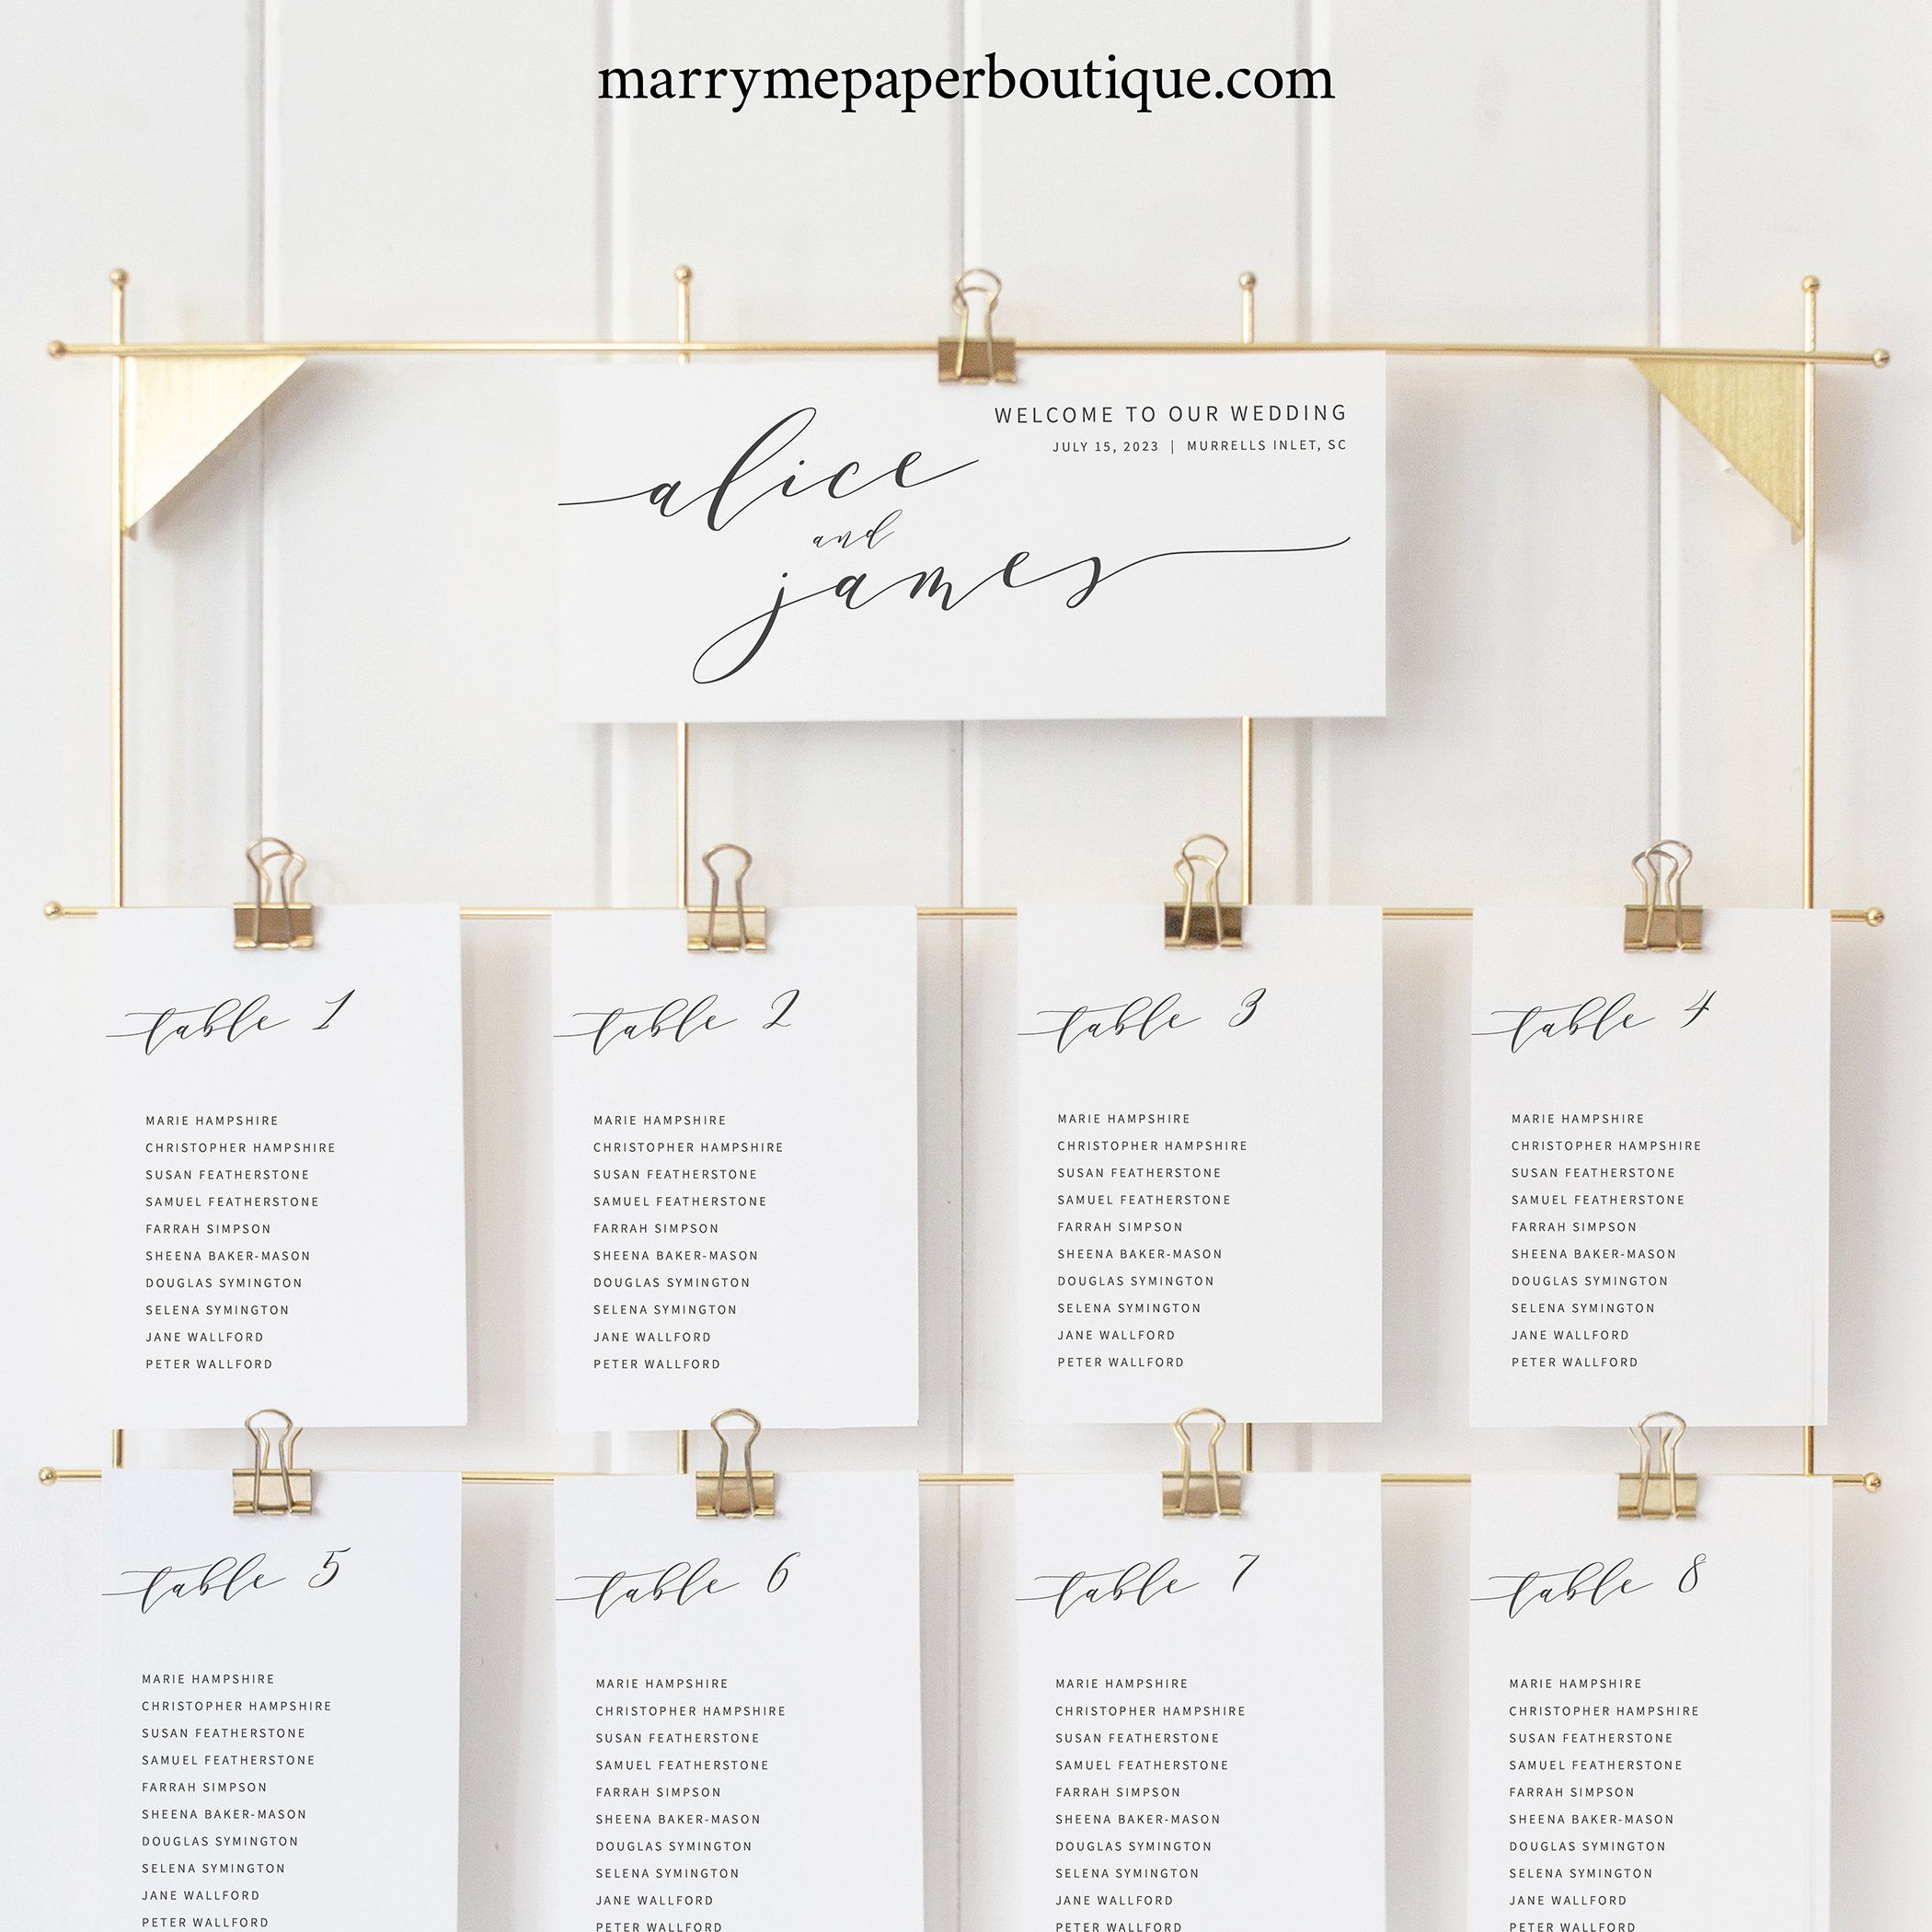 Elegant Seating Cards Template Modern Wedding Seating Chart Etsy Seating Chart Wedding Wedding Seating Wedding Modern